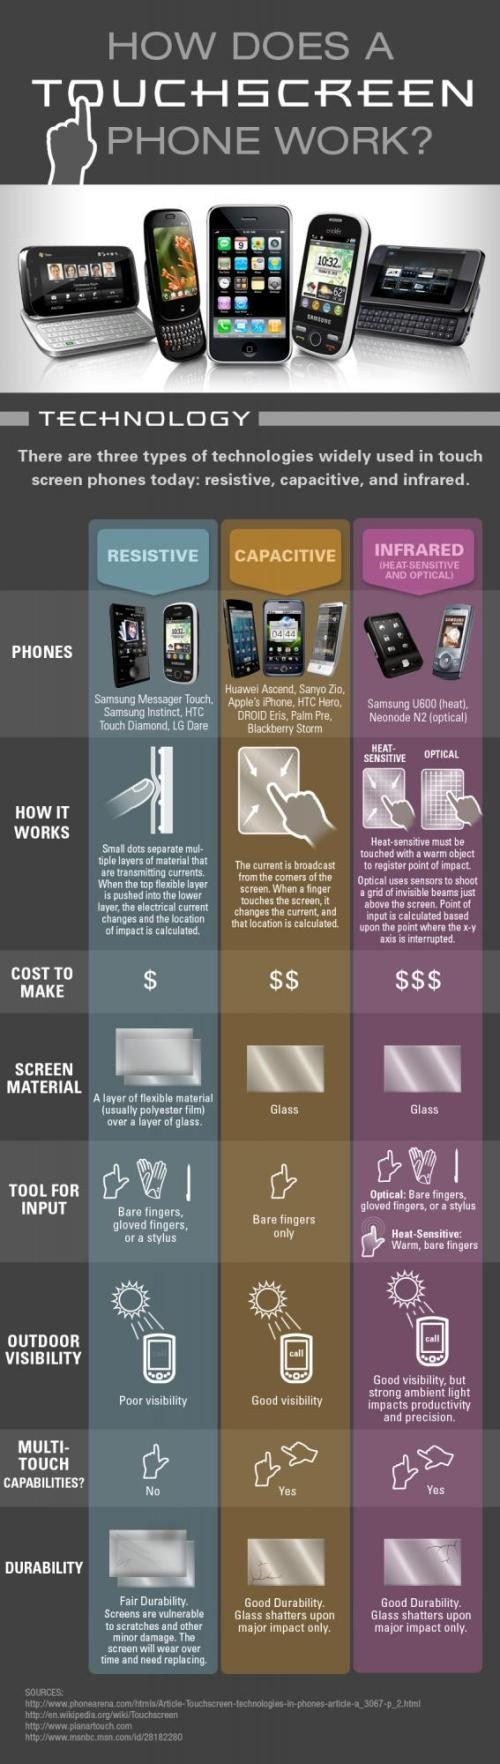 infographic smart phones technology touchscreens